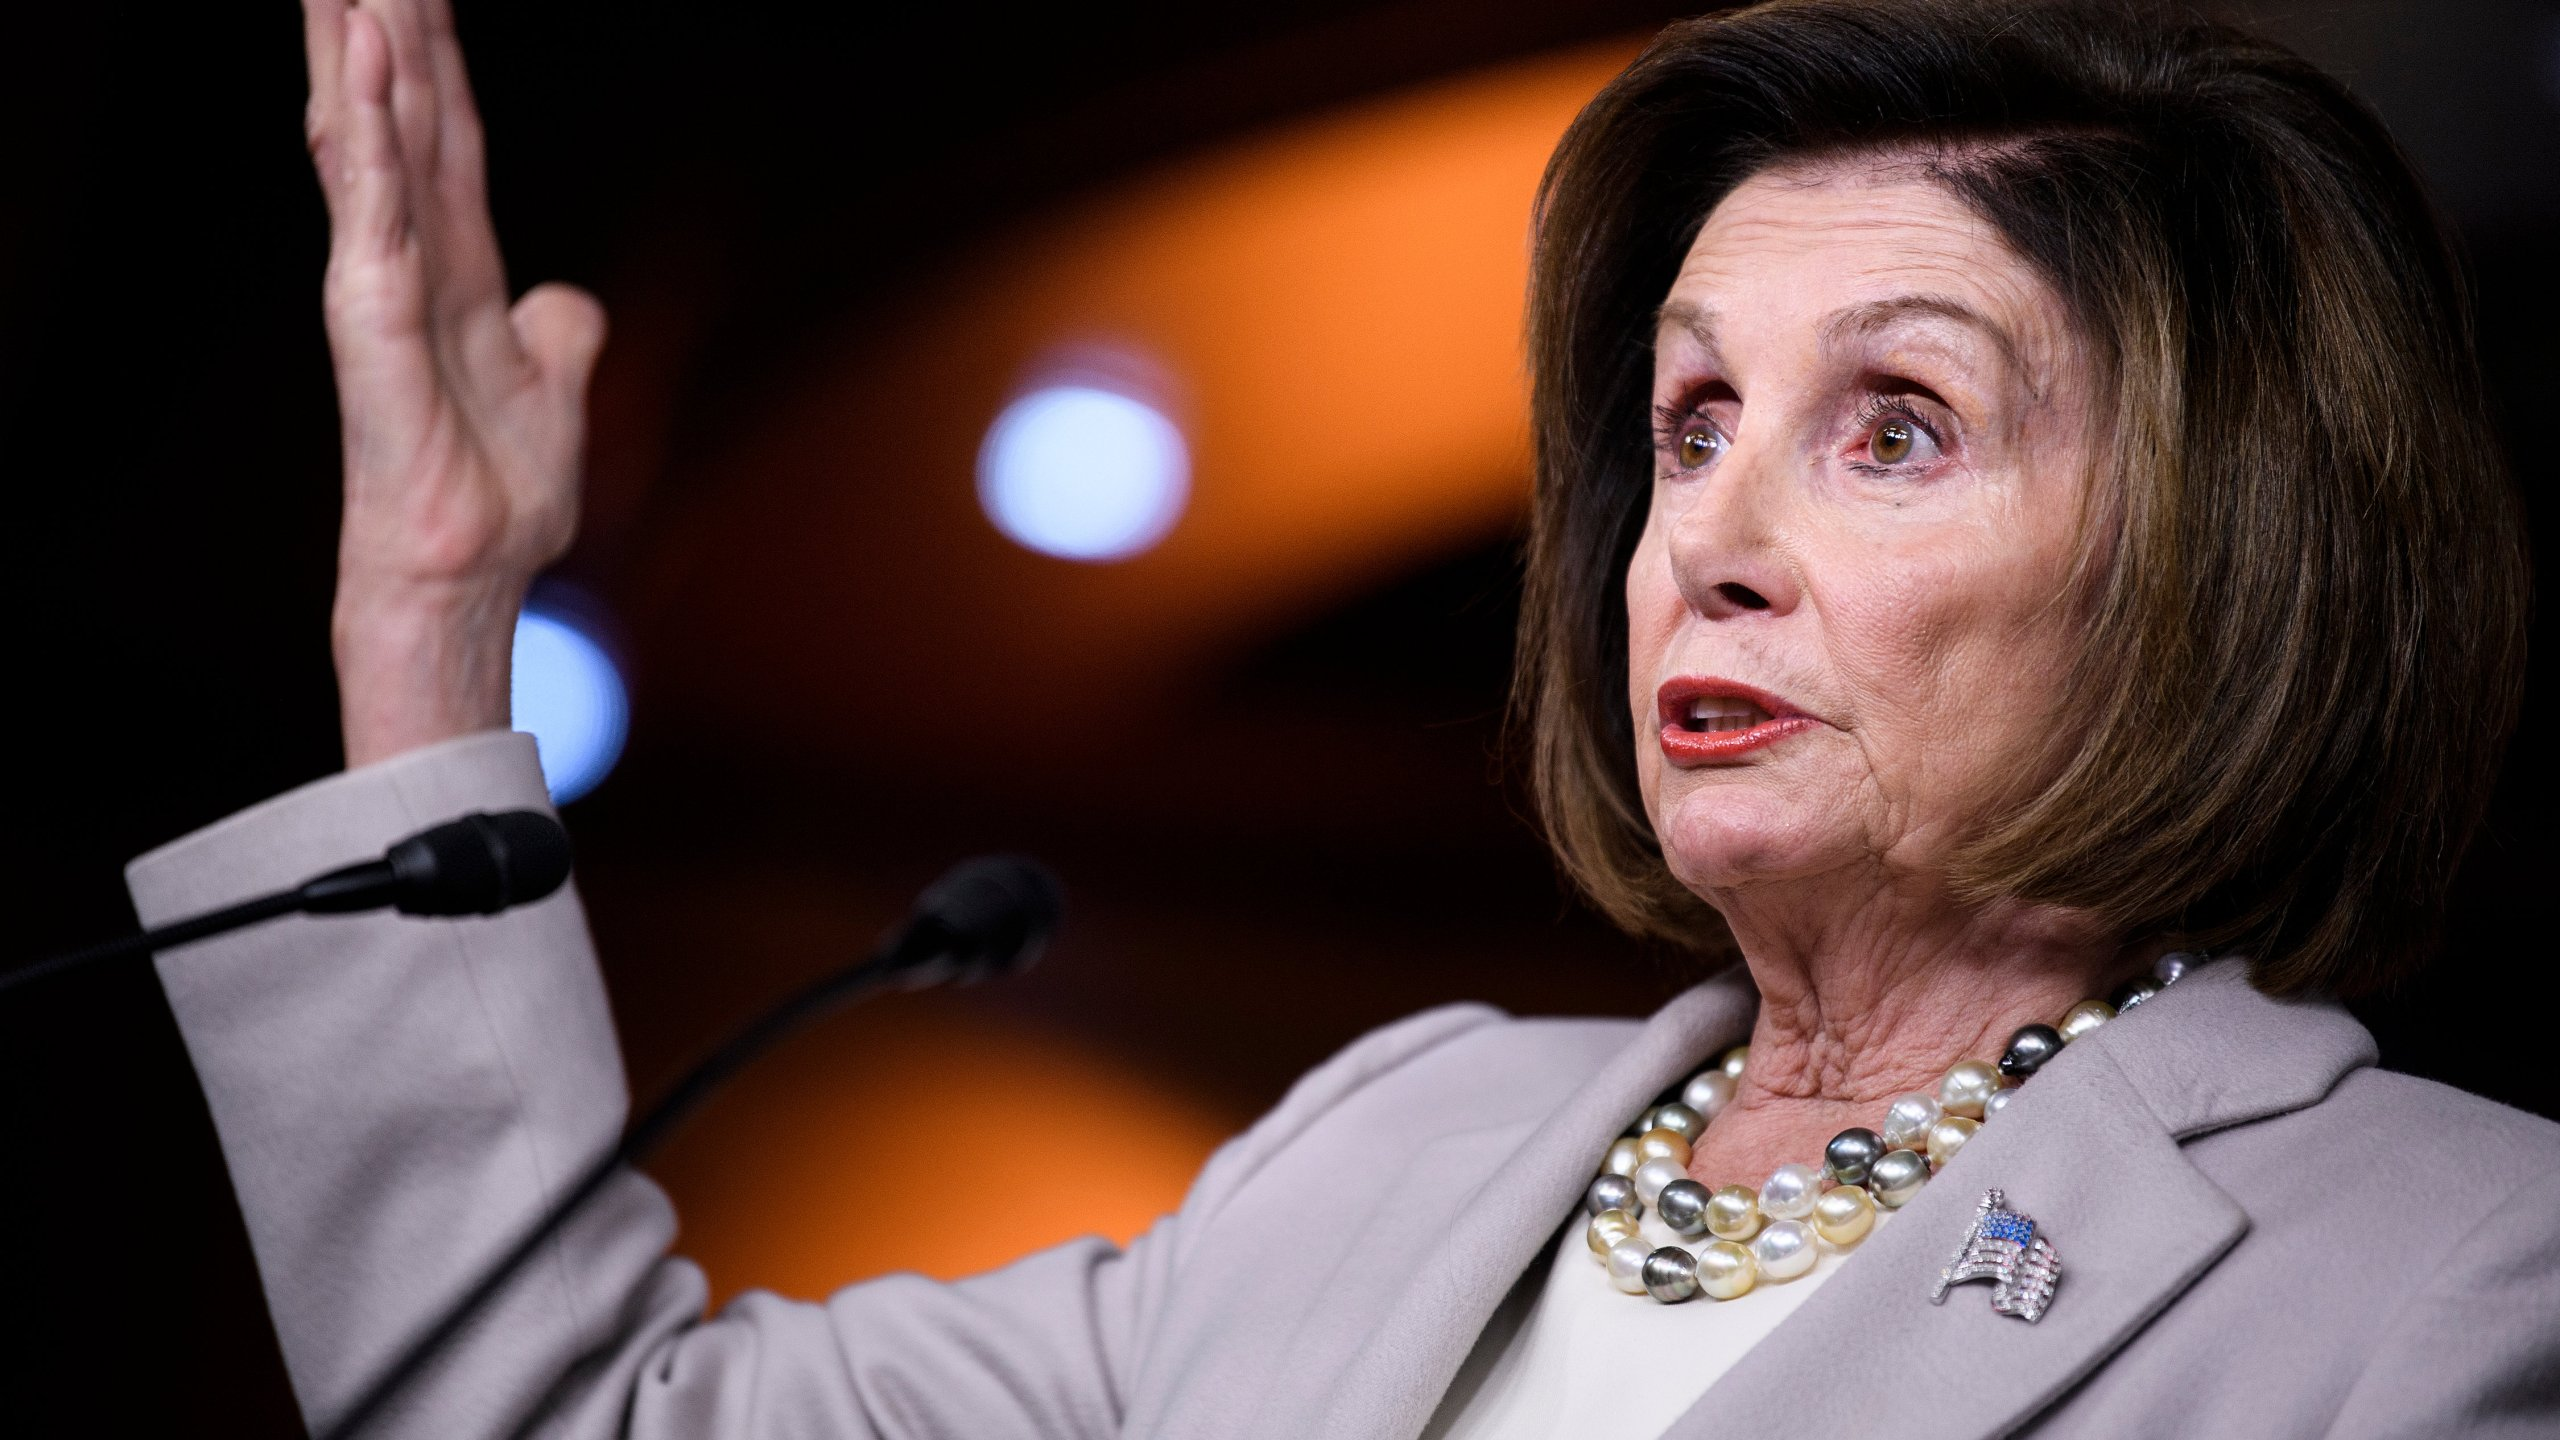 U.S. Speaker of the House Nancy Pelosi speaks at her weekly press conference on Capitol Hill in Washington, D.C., Oct. 17, 2019. (Credit: BRENDAN SMIALOWSKI/AFP via Getty Images)